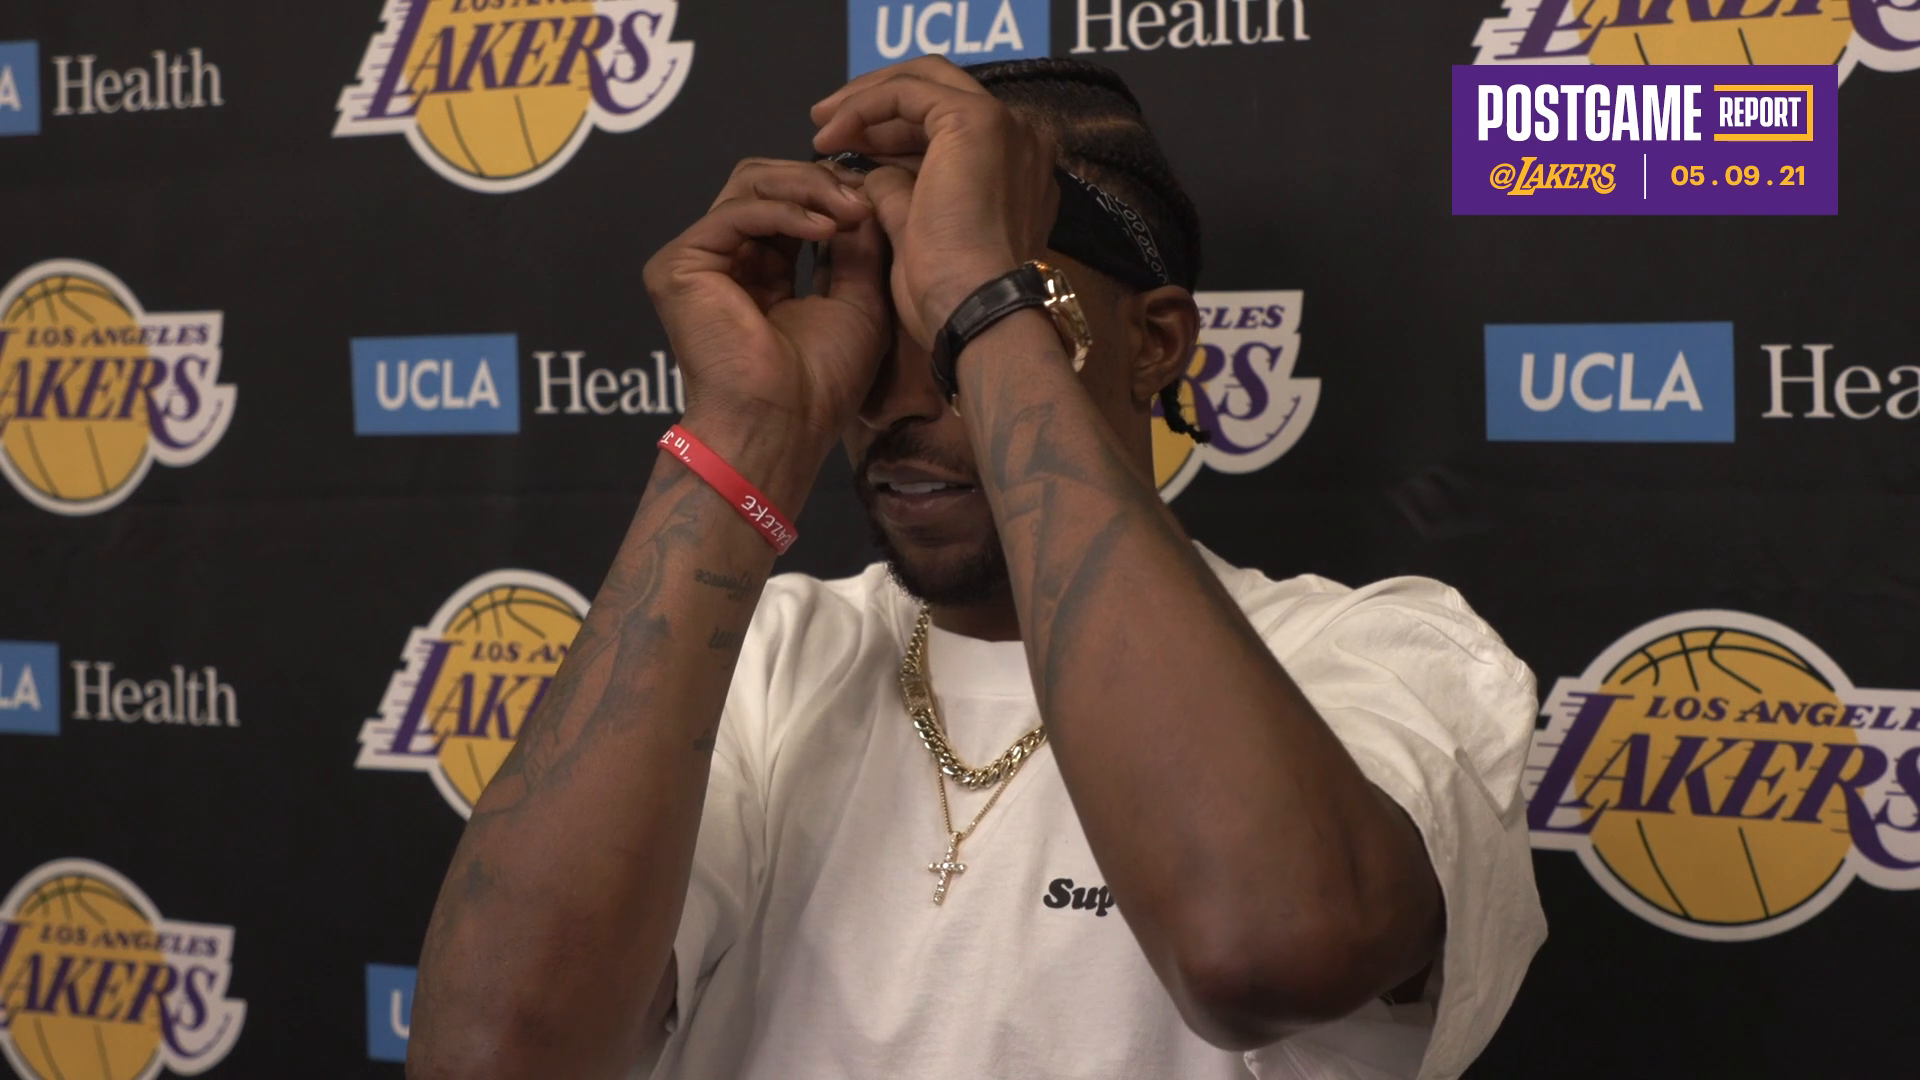 Lakers Postgame: Kentavious Caldwell-Pope (5/9/21)